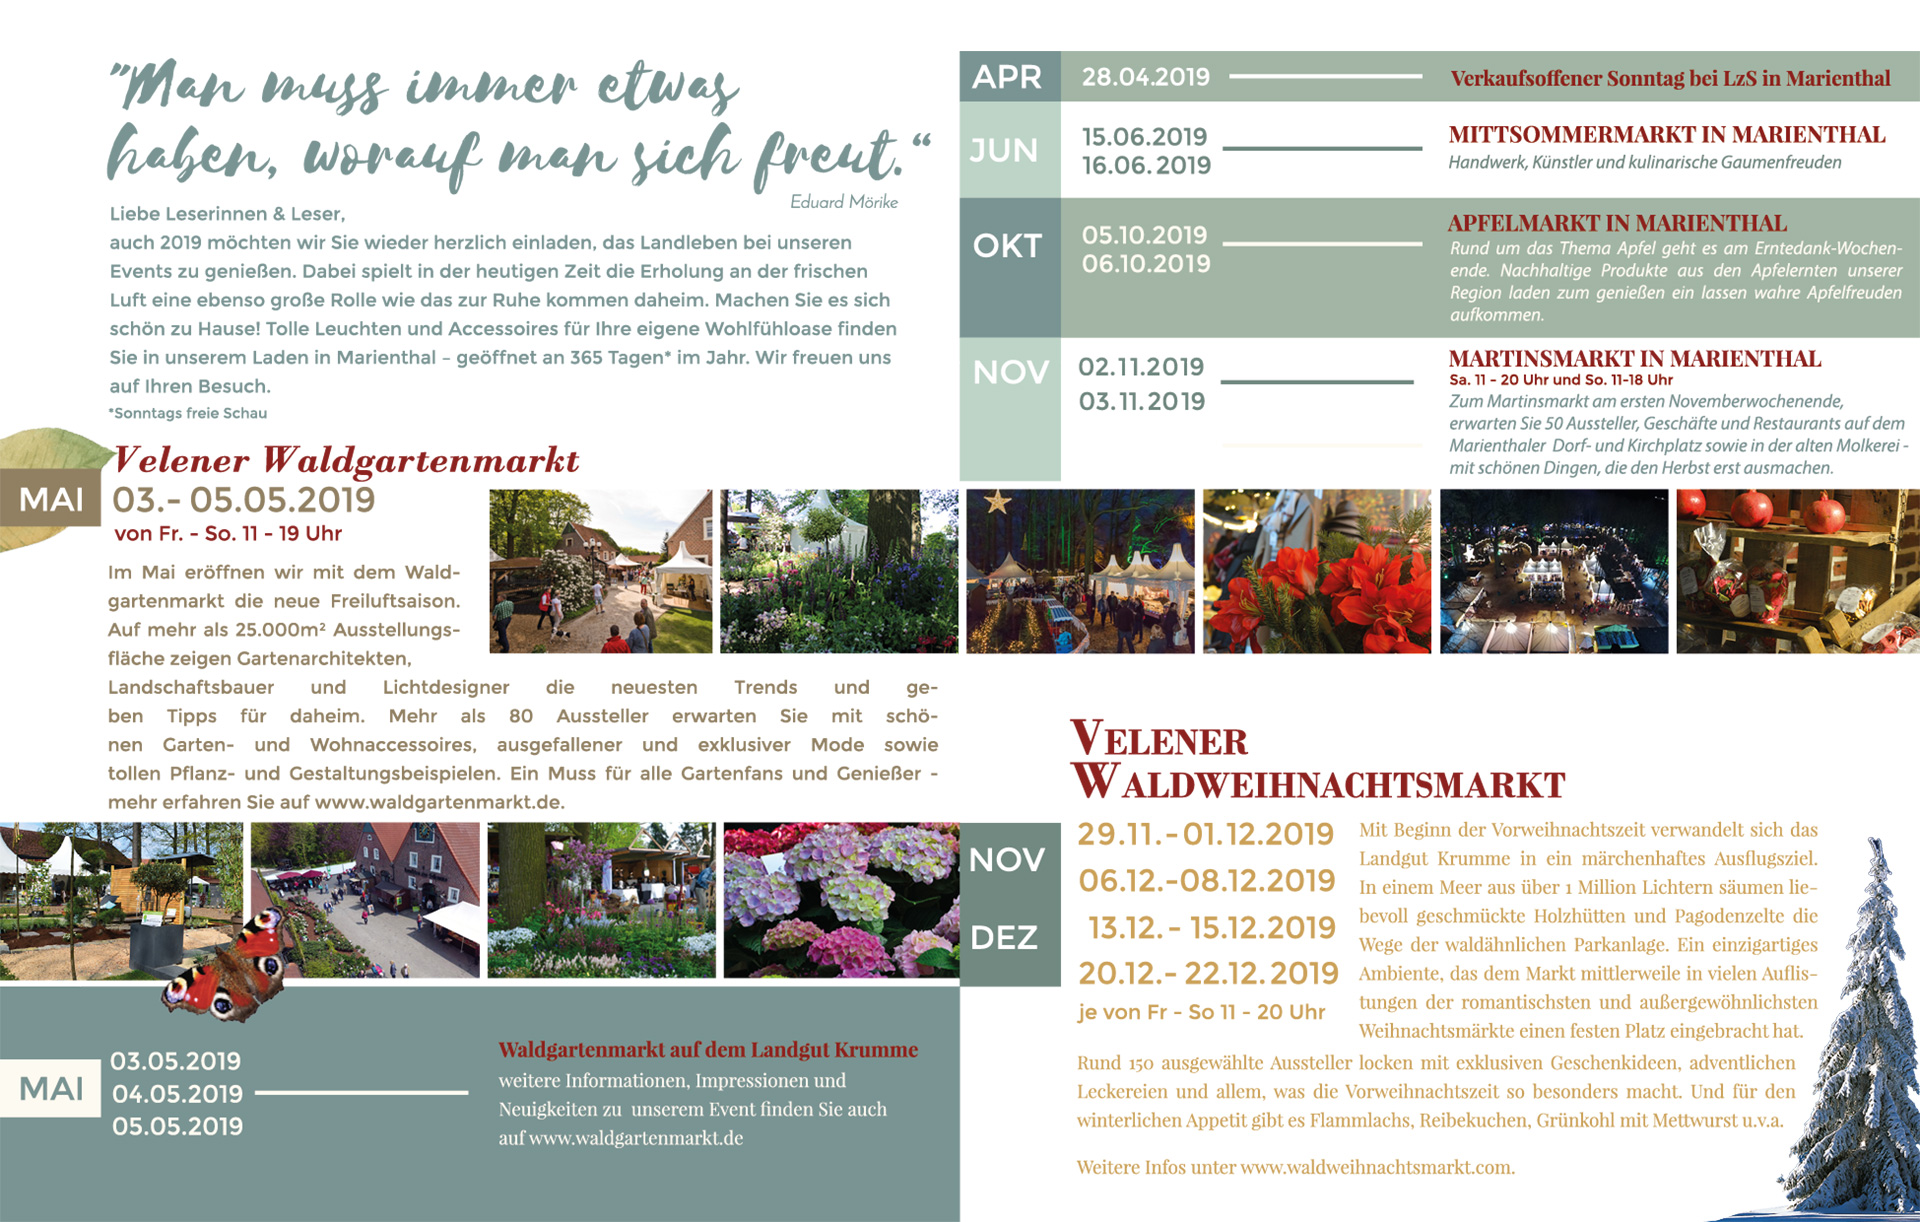 Eventflyer Landgut Krumme 2019